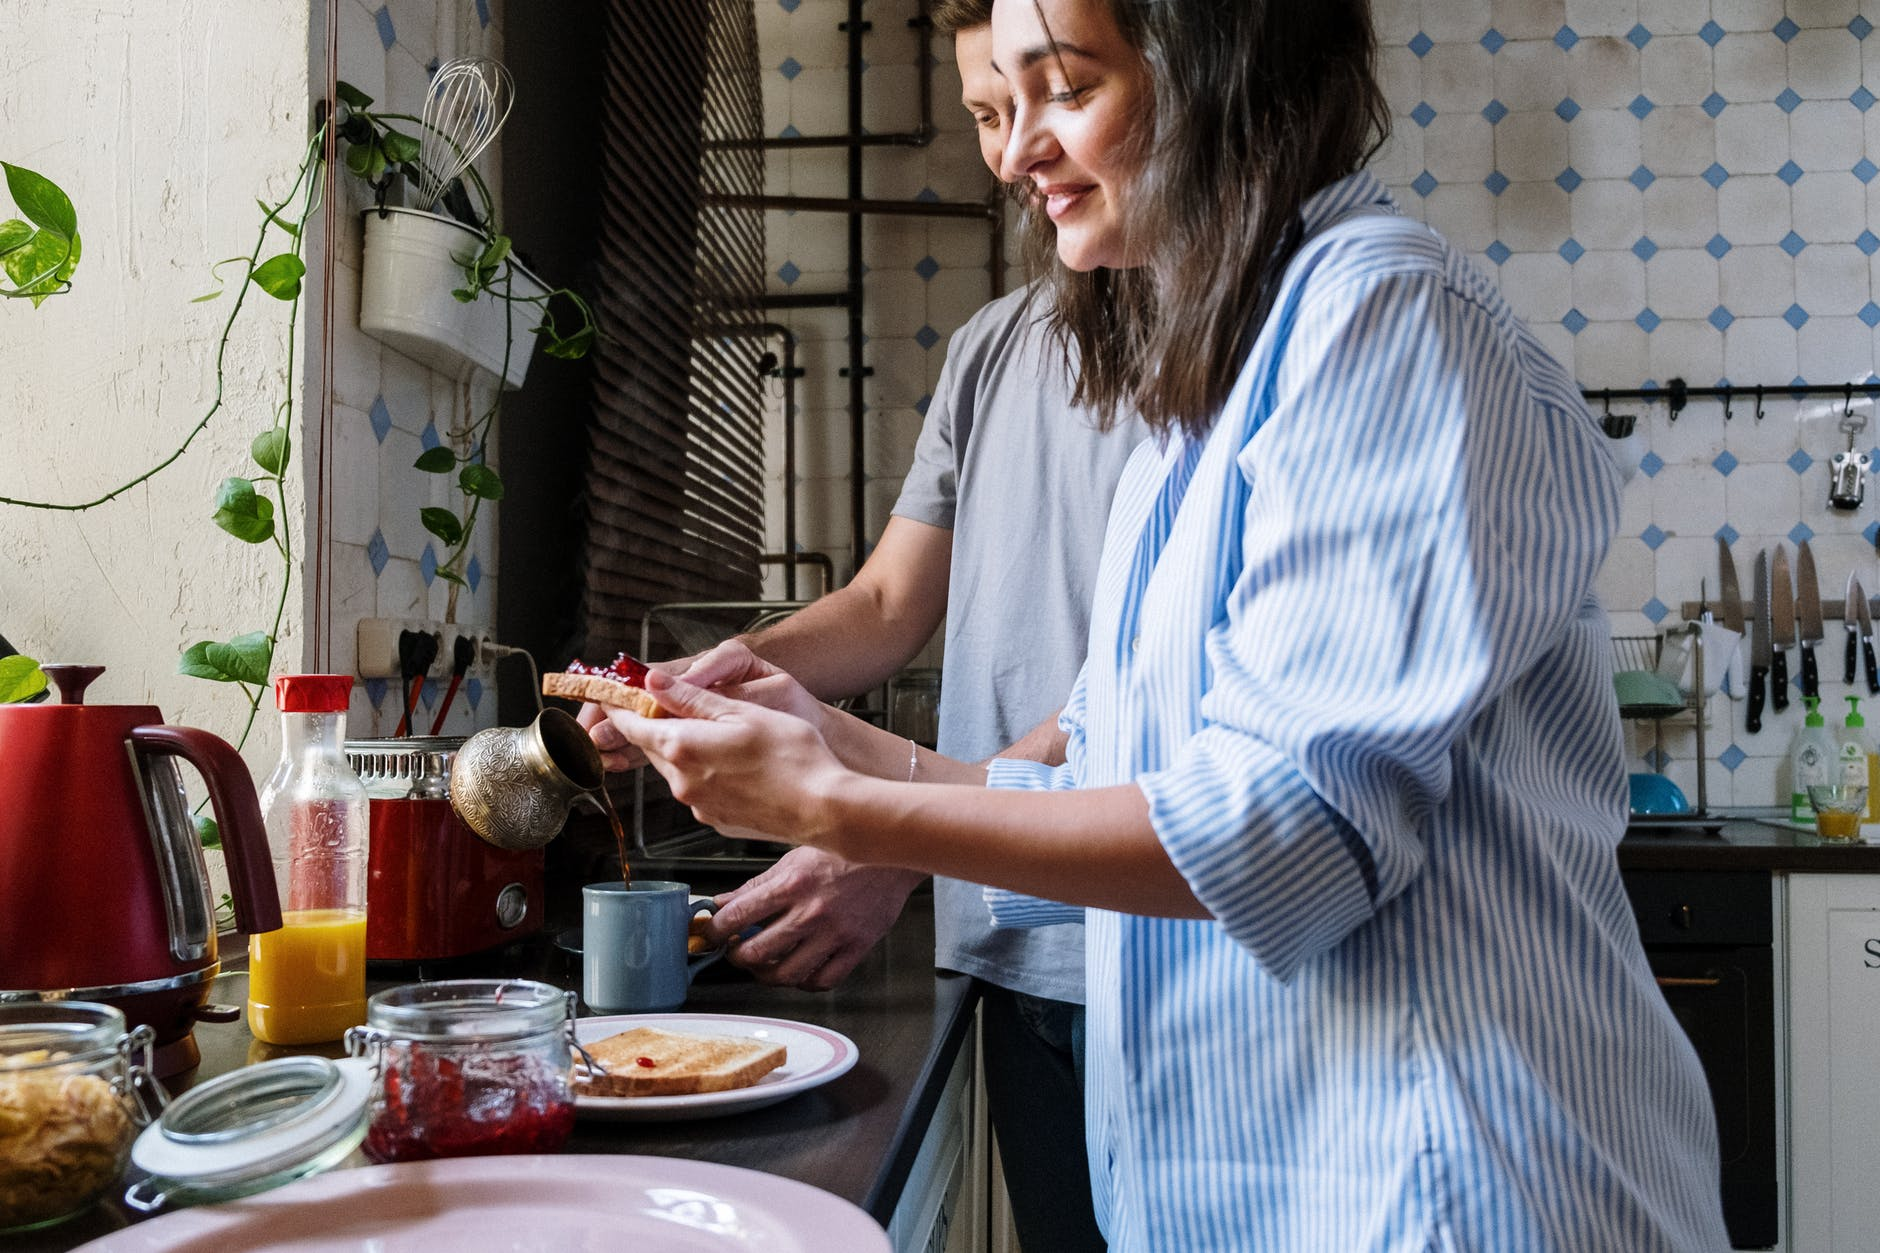 woman in blue and white stripe shirt holding red food